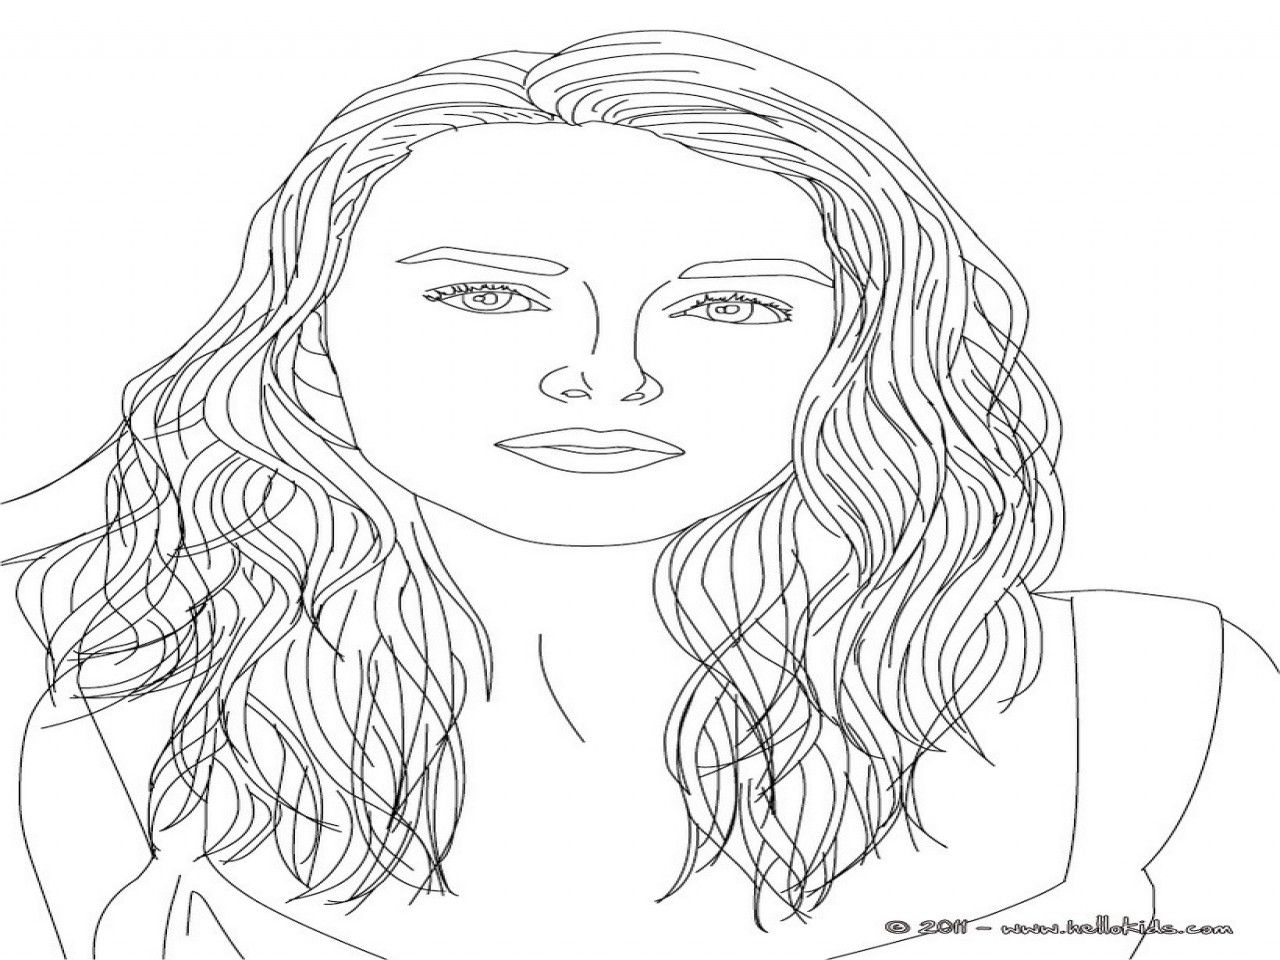 2a9214b9d3daa68d in 2020 People coloring pages, Adult